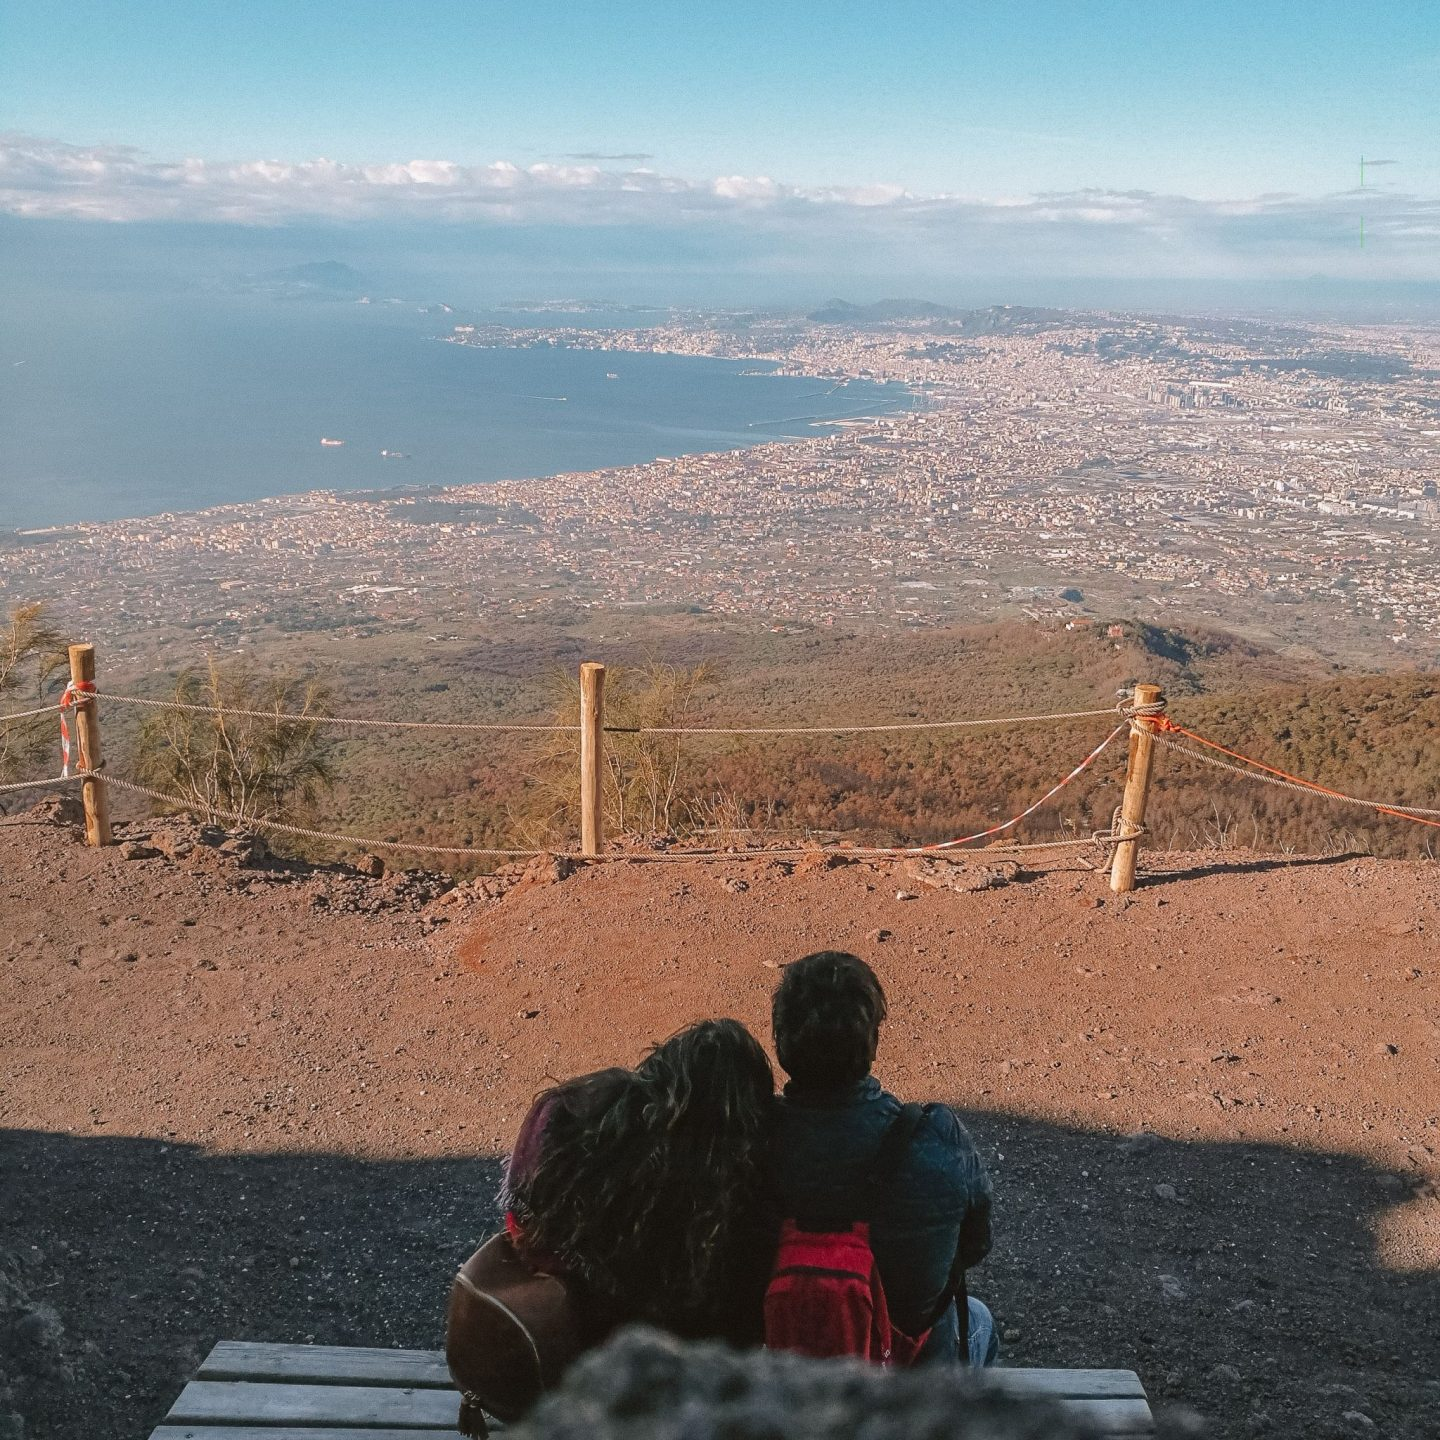 @2balticnavigators's cover photo for '#shareurexperience - Climbing Mount Vesuvius - Tranneta's Travels'